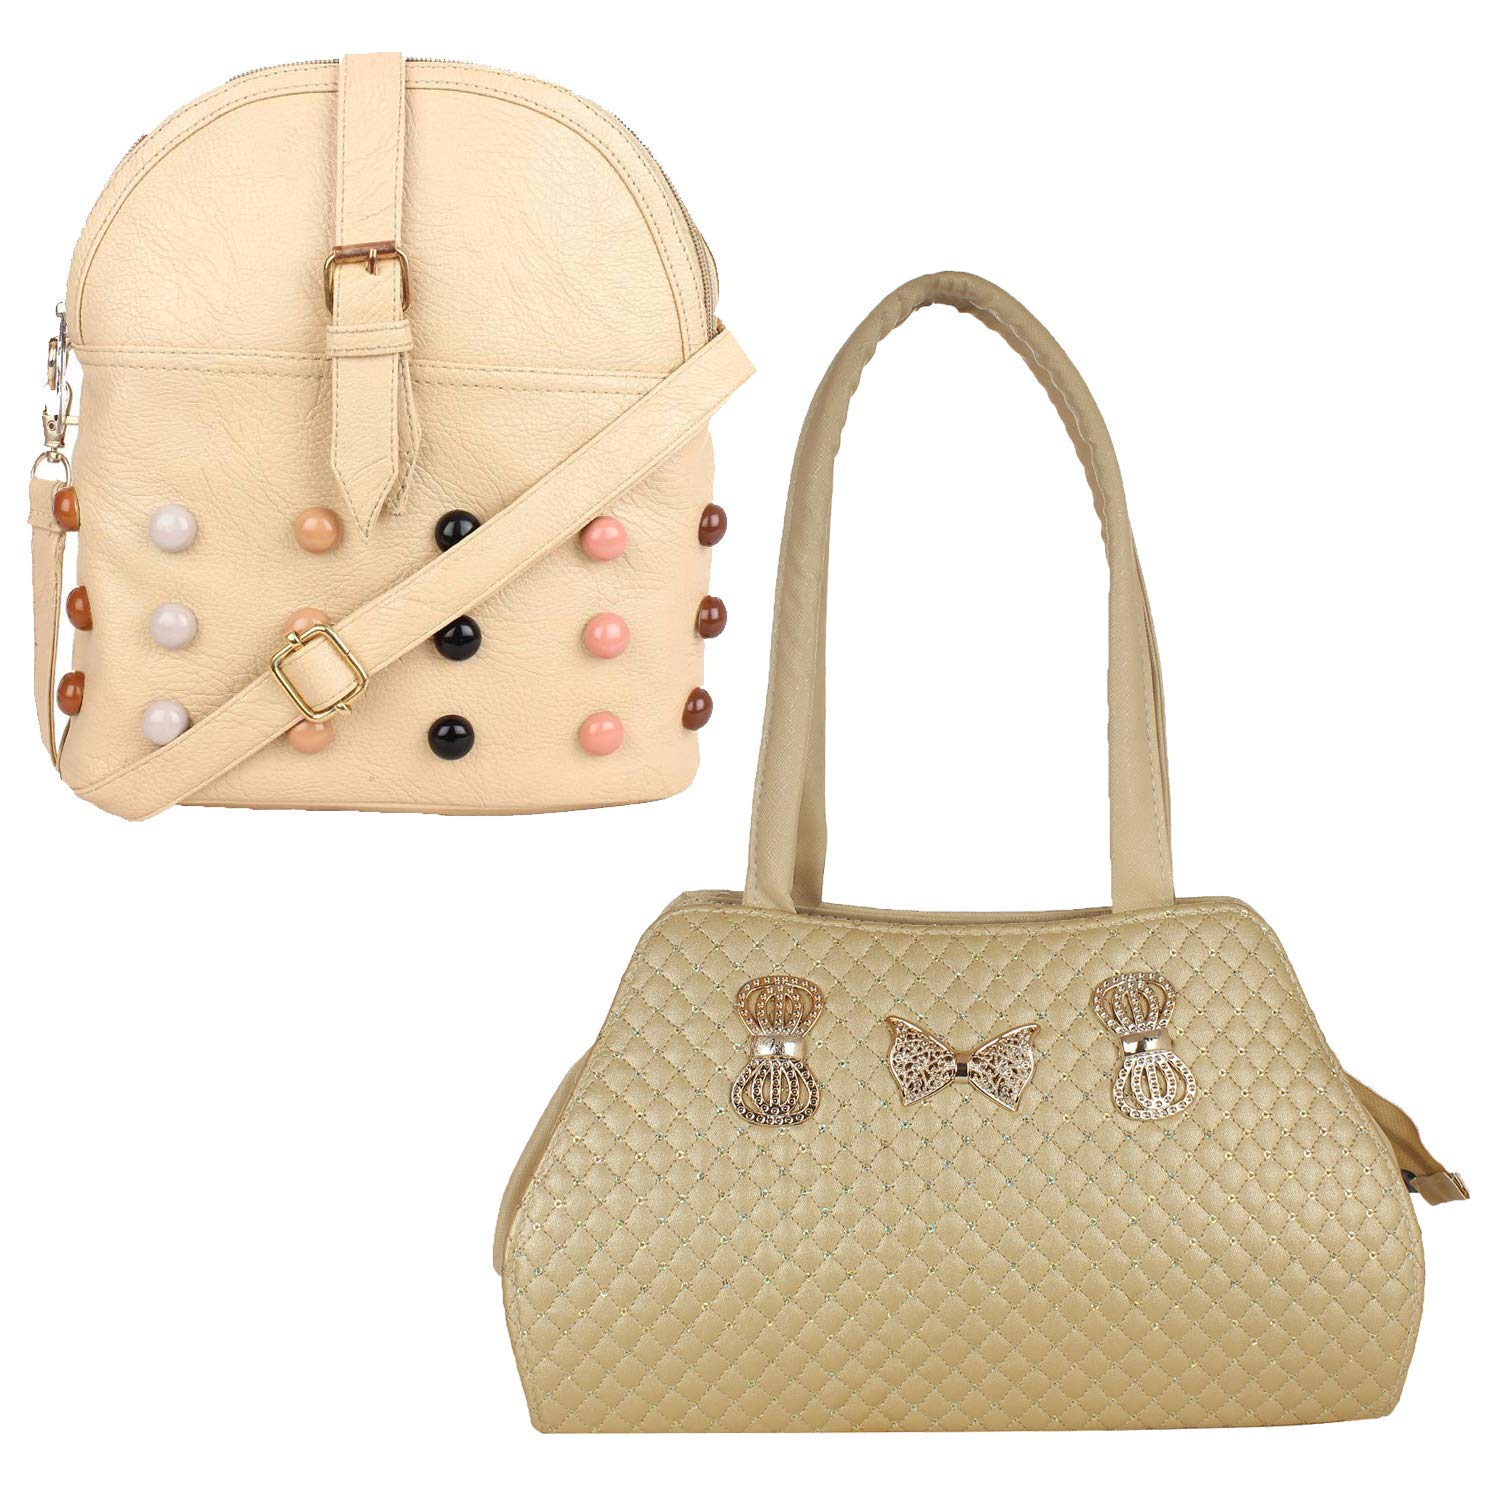 82d6f6cbf5 Fillincart Women Light Golden and Beige Colour PU Material Pack of 1 Sling  Bag and 1 Hand Bag  Amazon.in  Shoes   Handbags